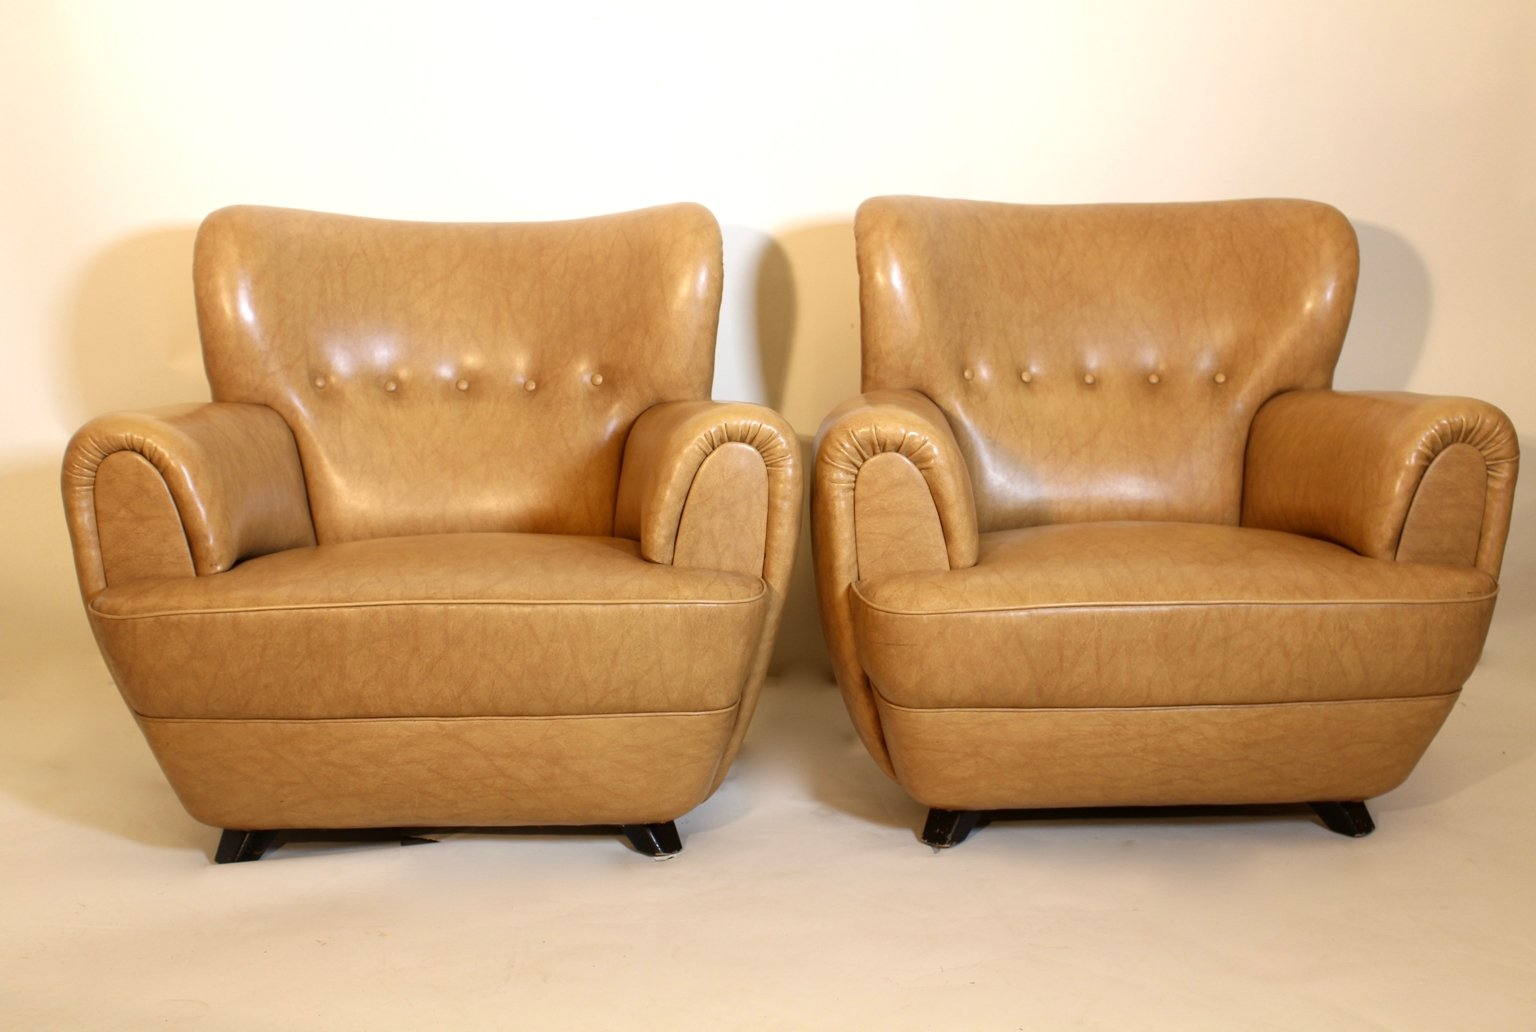 Club Chairs By Guglielmo Ulrich 1940s Set Of 2 For Sale At Pamono